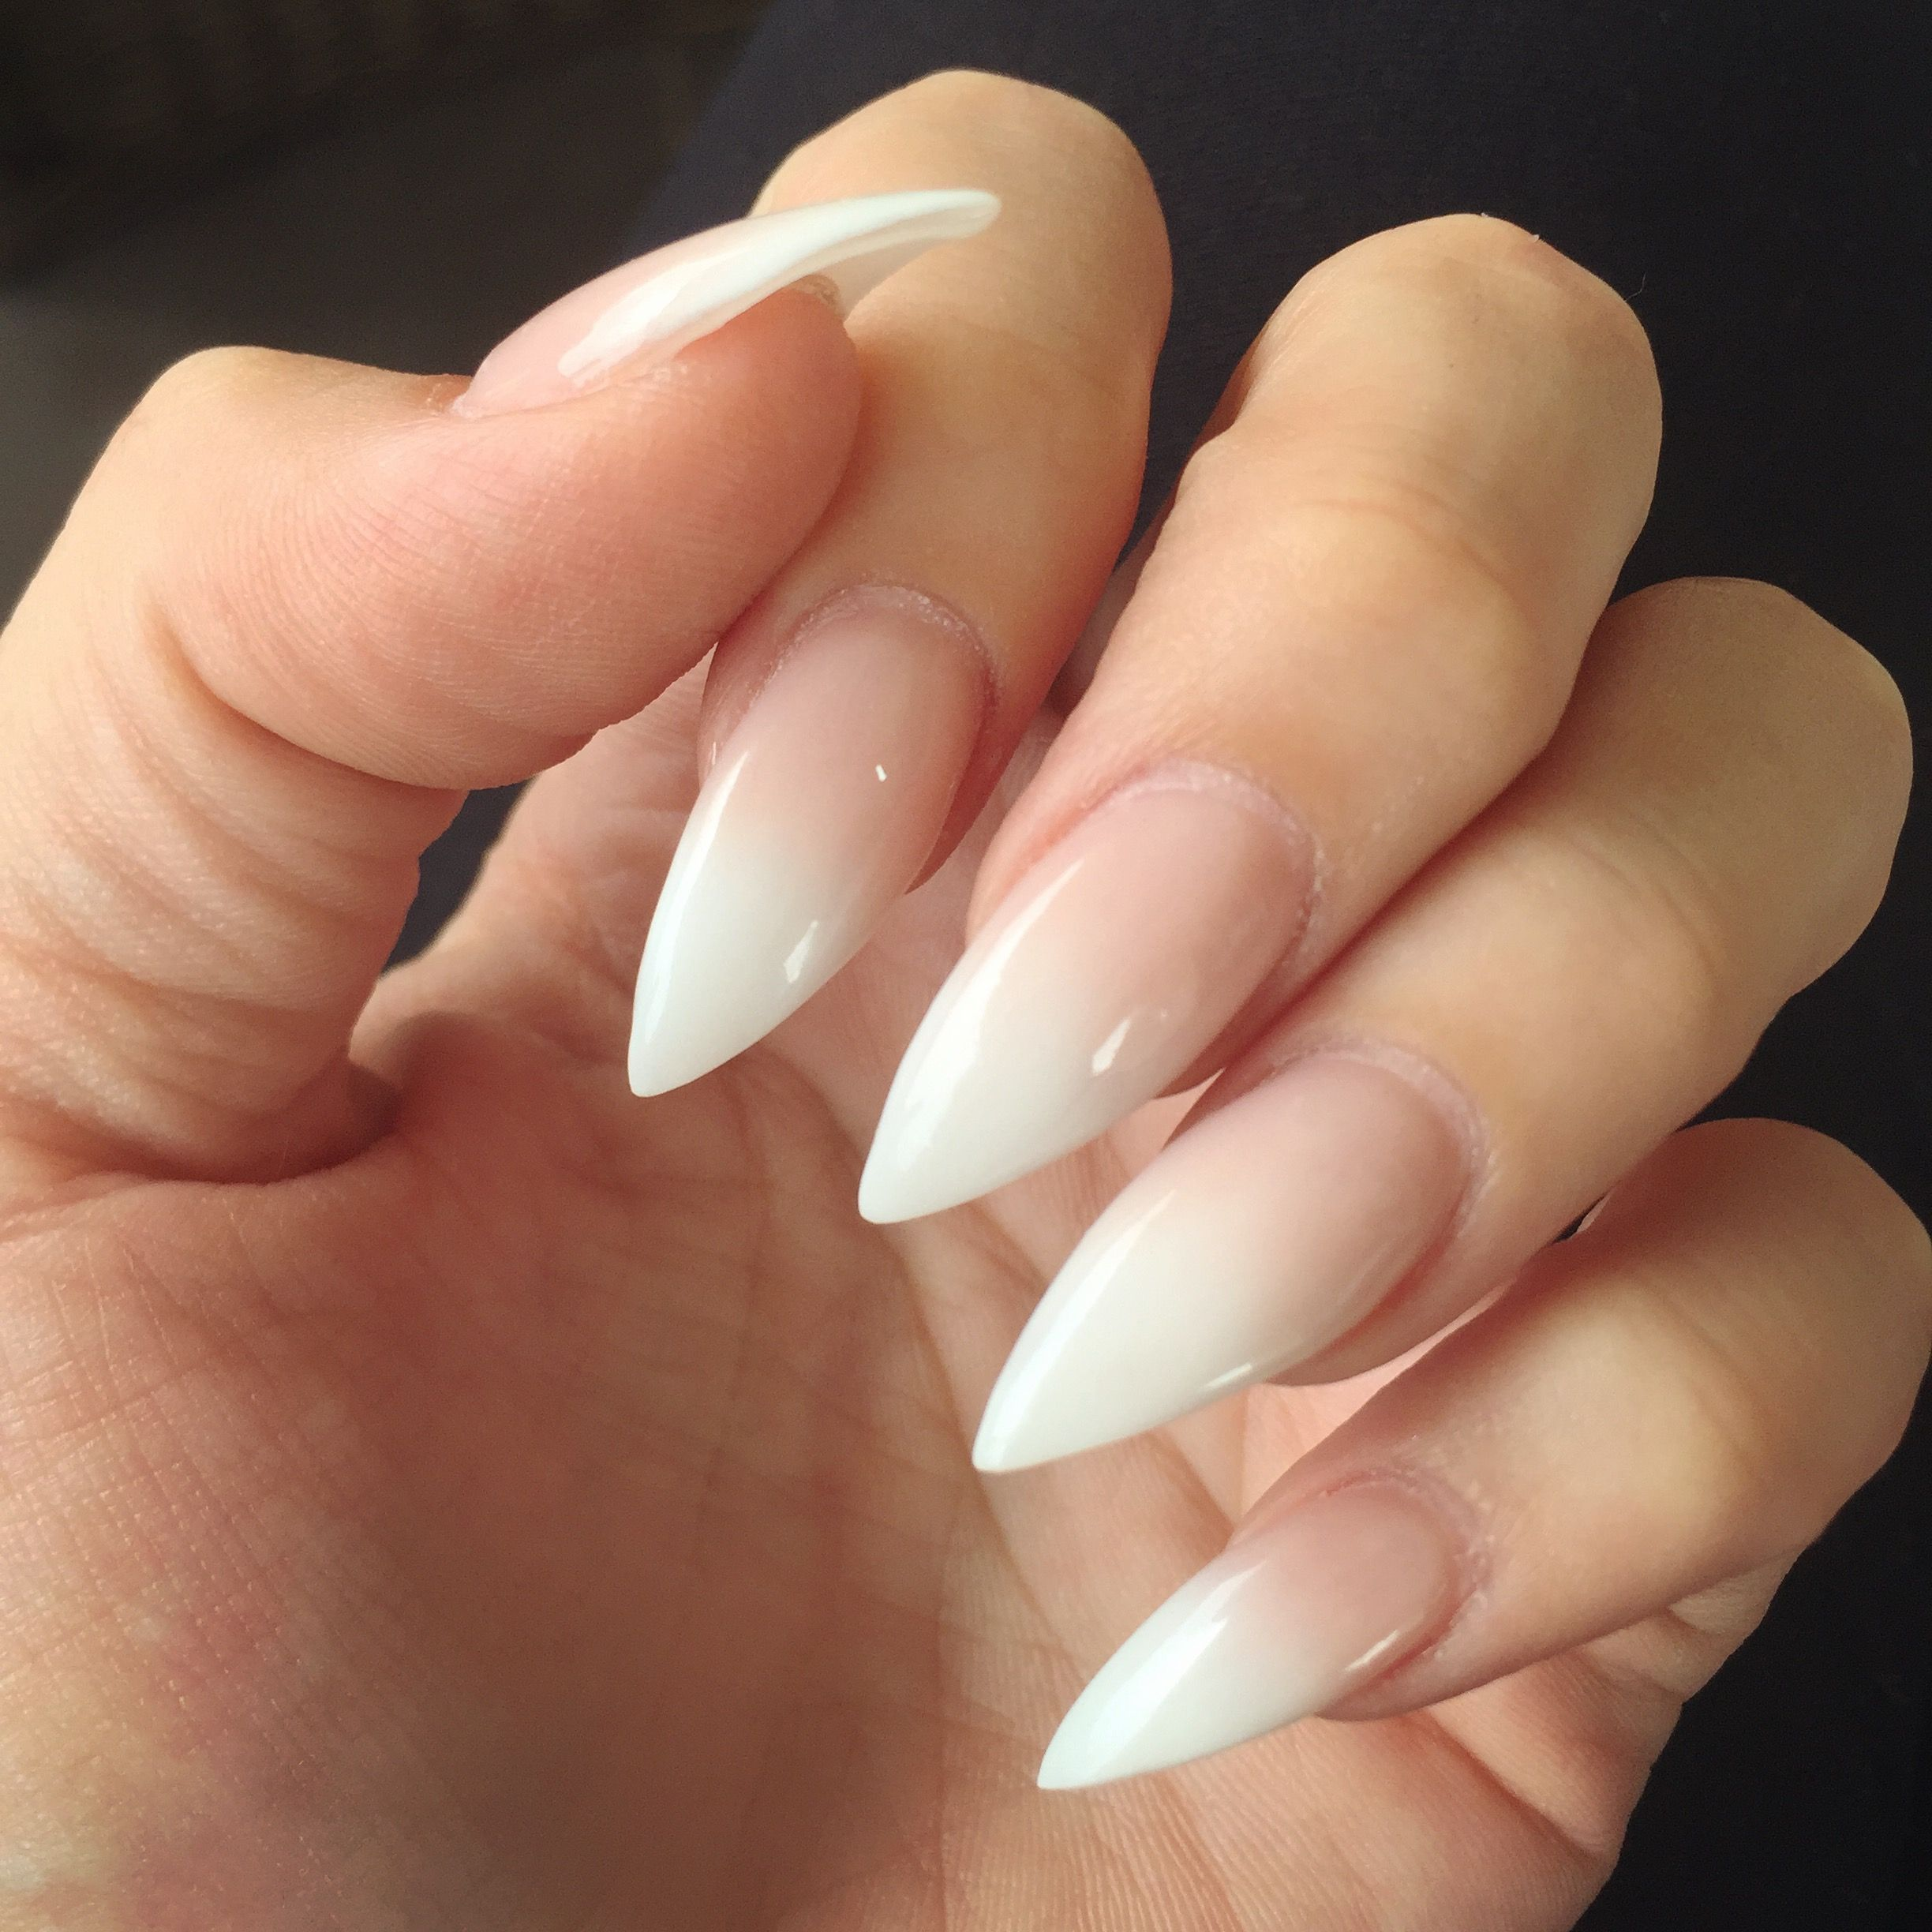 Ombre French Stiletto Nails More Luxury Beauty Winter Nails Http Amzn To 2lfafj4 French Stiletto Nails Ombre Acrylic Nails Stiletto Nails Designs